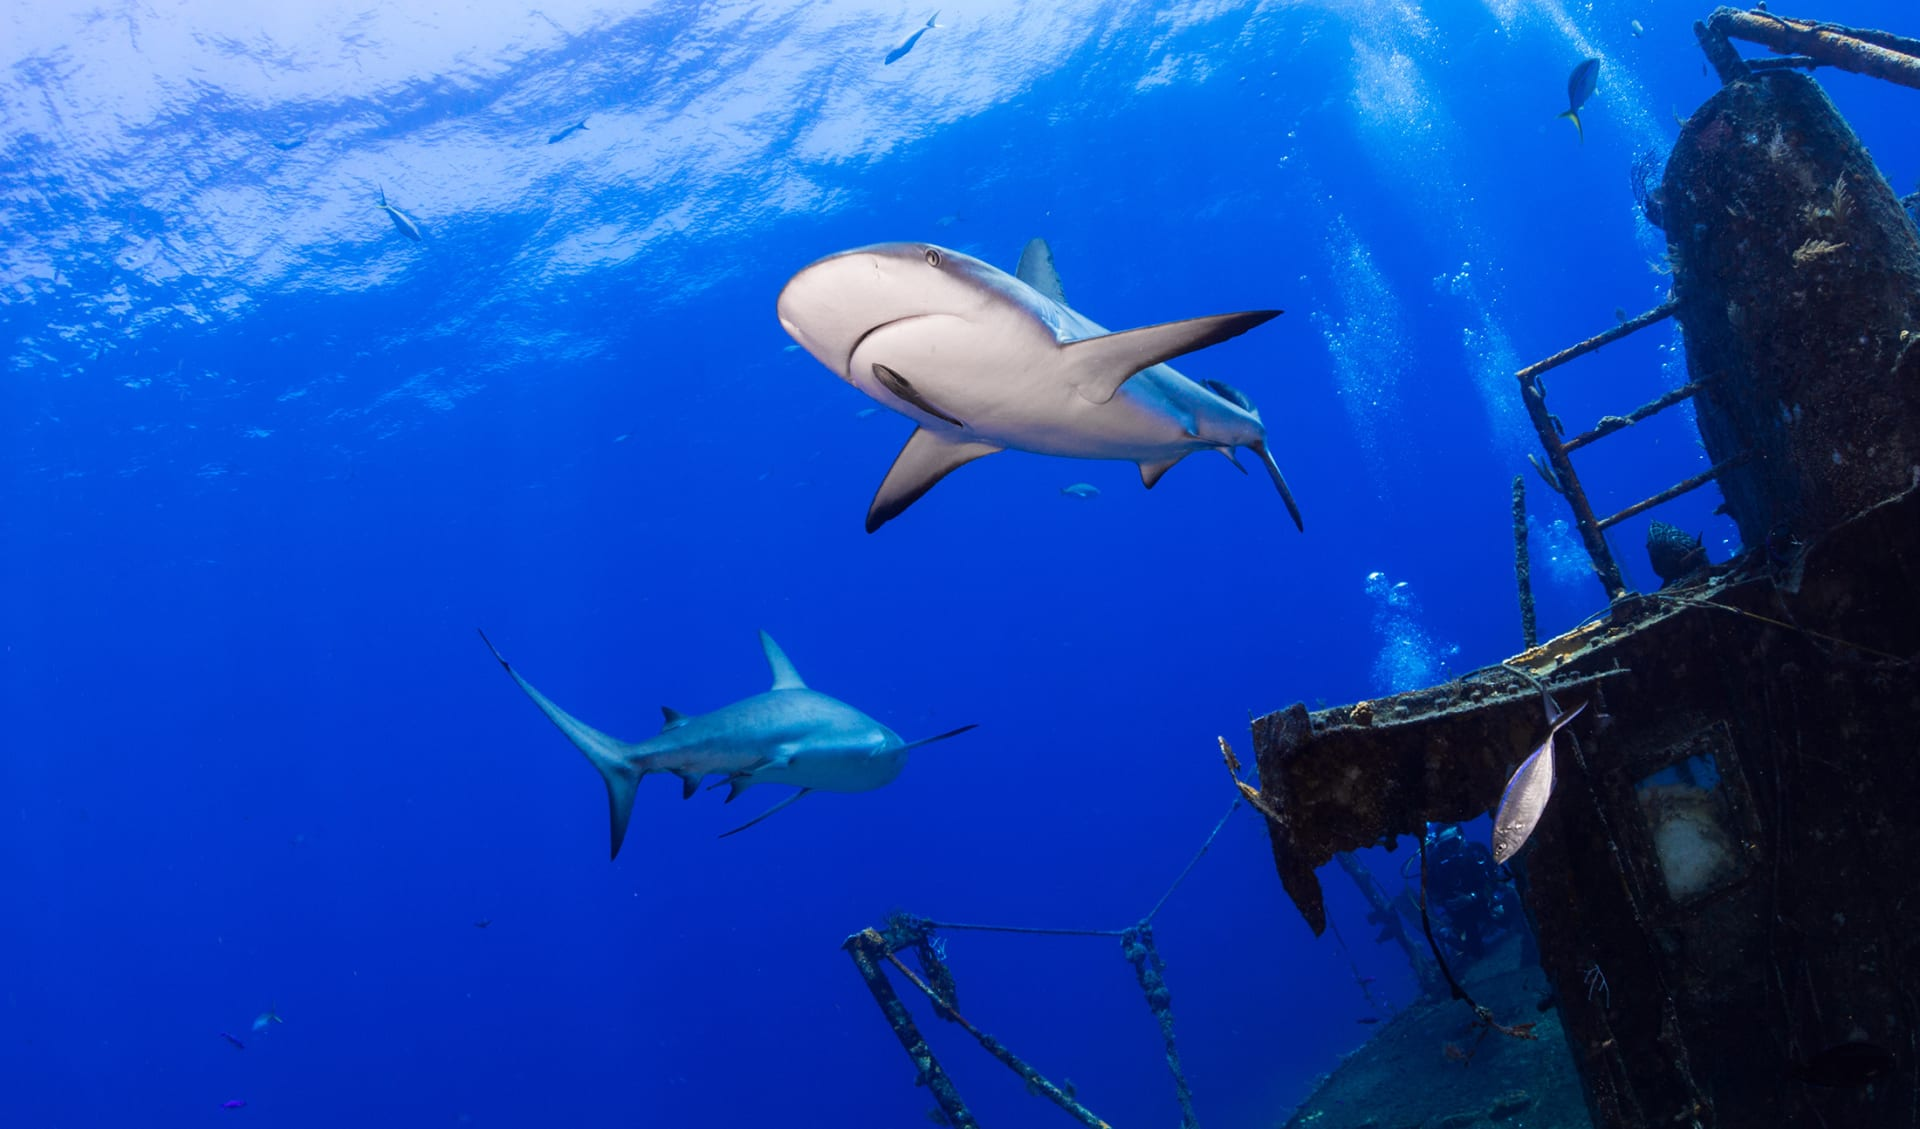 Carribean reef shark swimming by a ship wreck